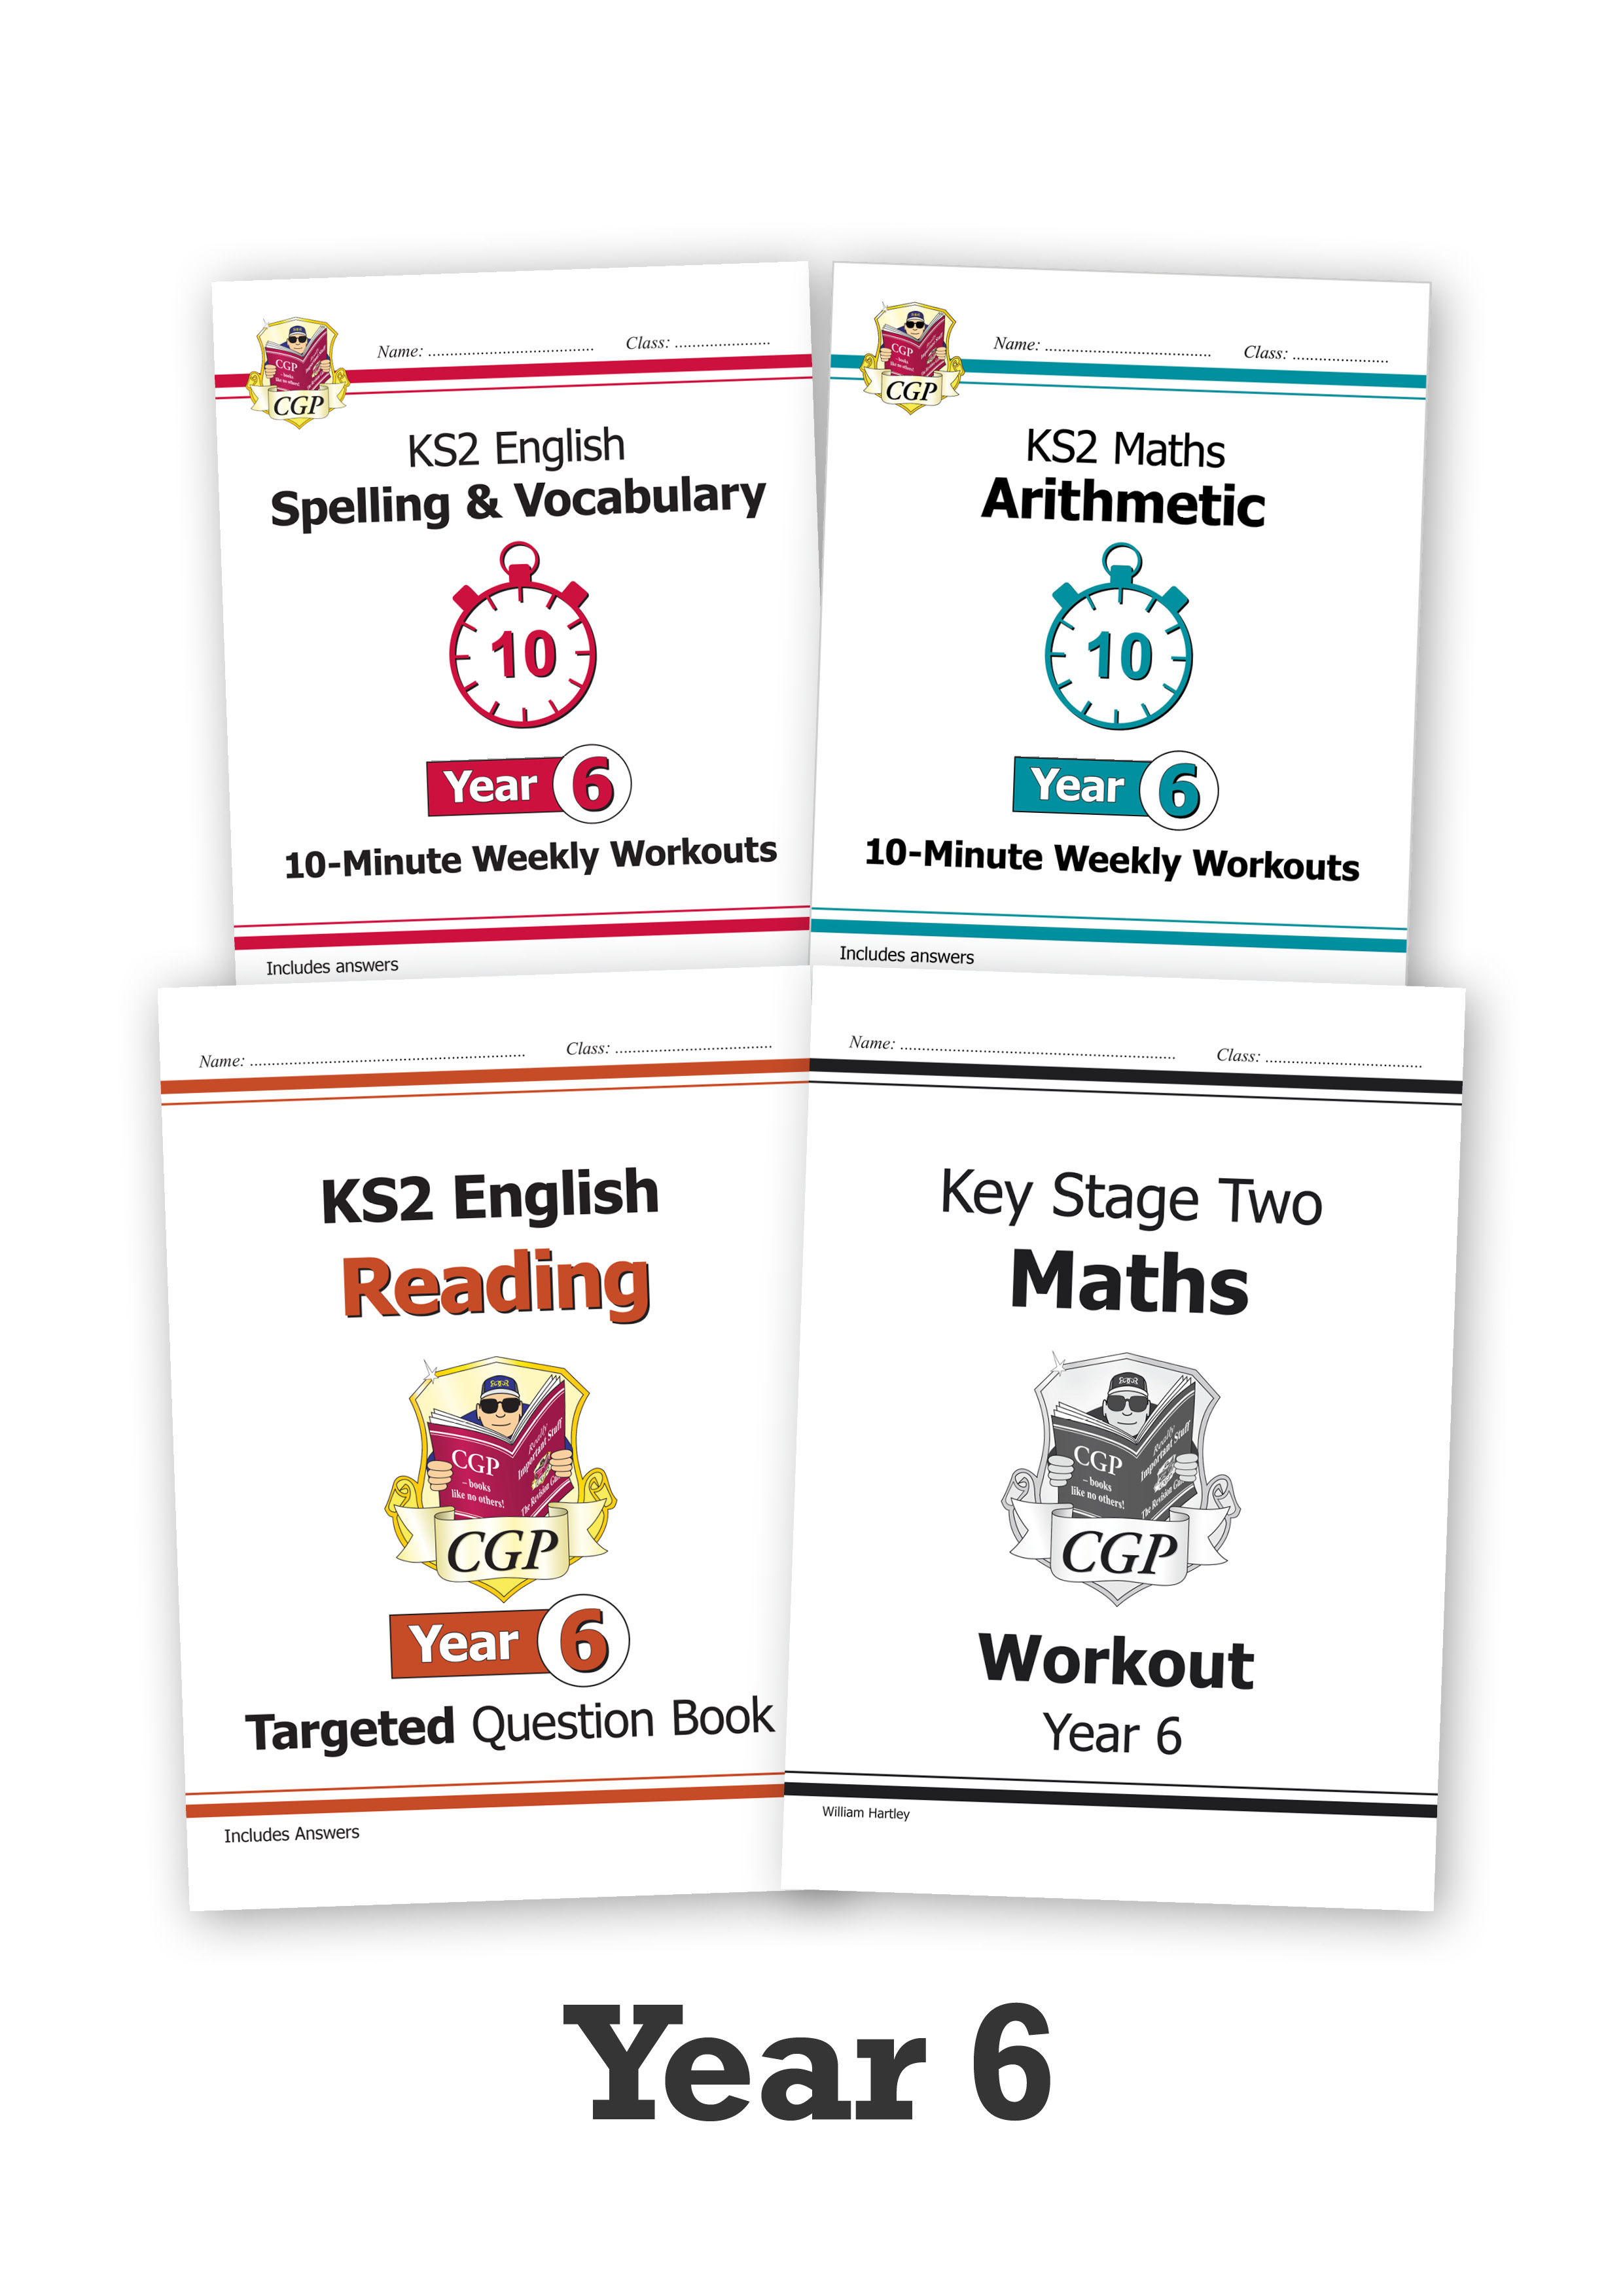 EM6CUB221 - Year 6 Home Learning Essentials – Spring Top-Up Bundle